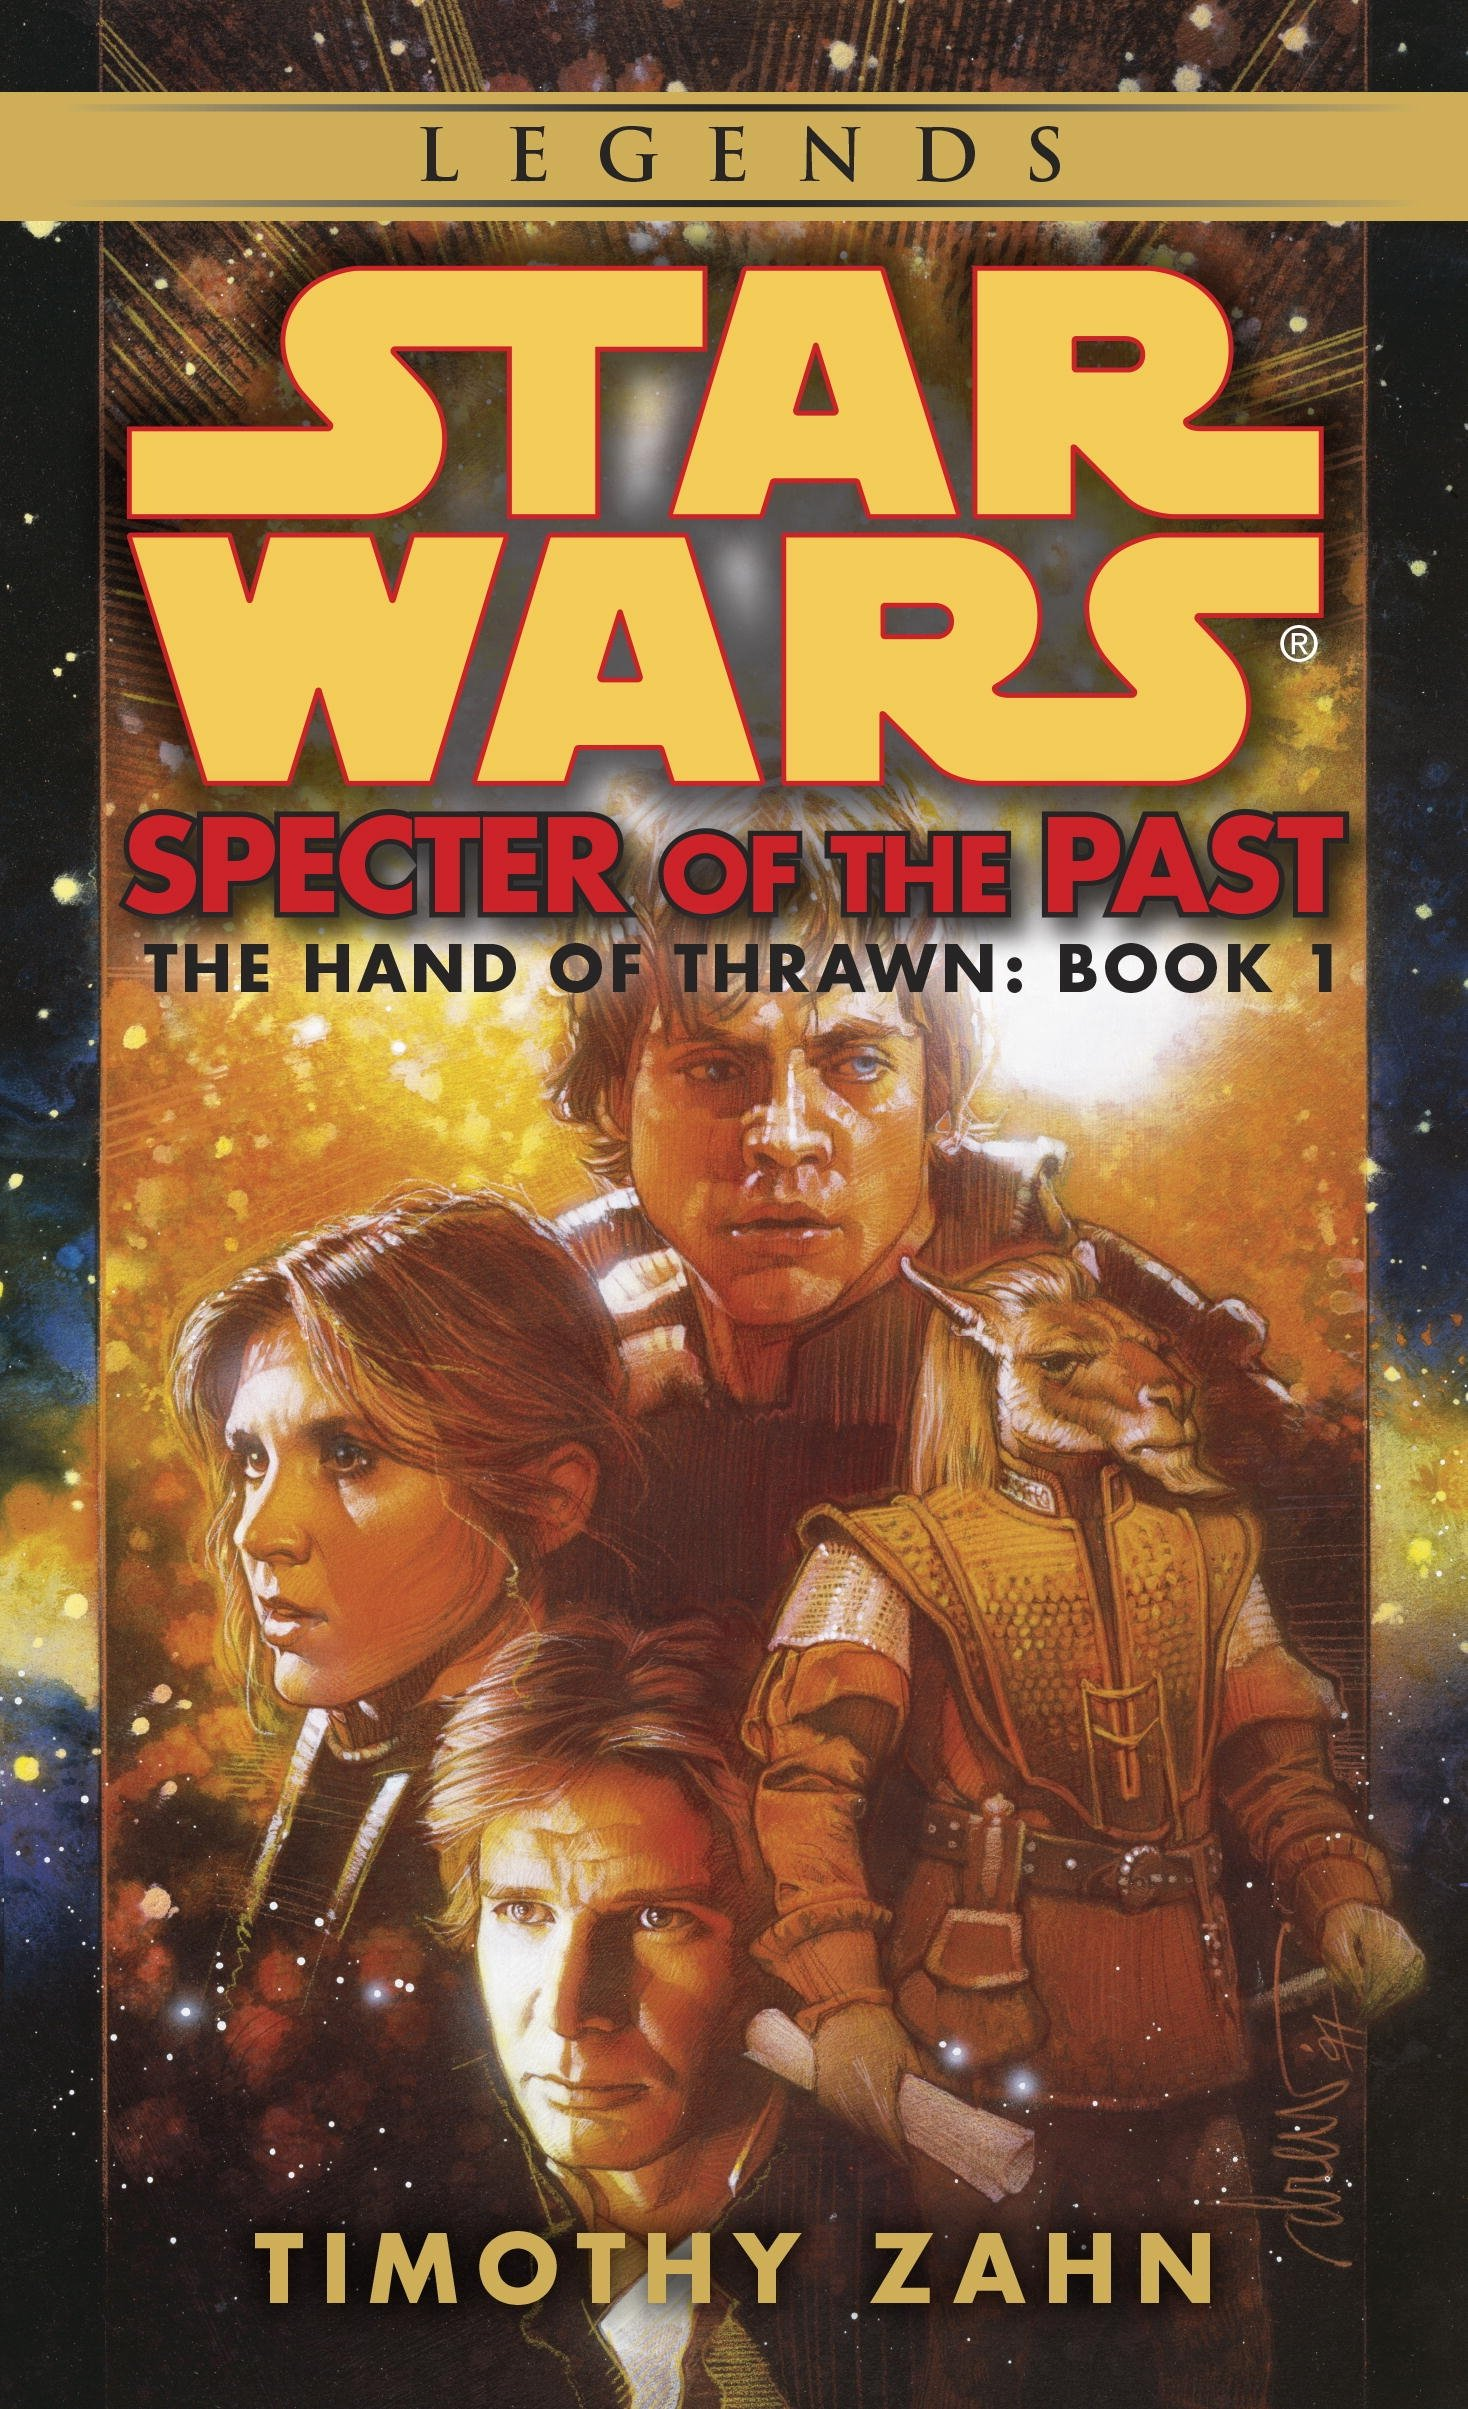 Specter of the Past by Timothy Zahn